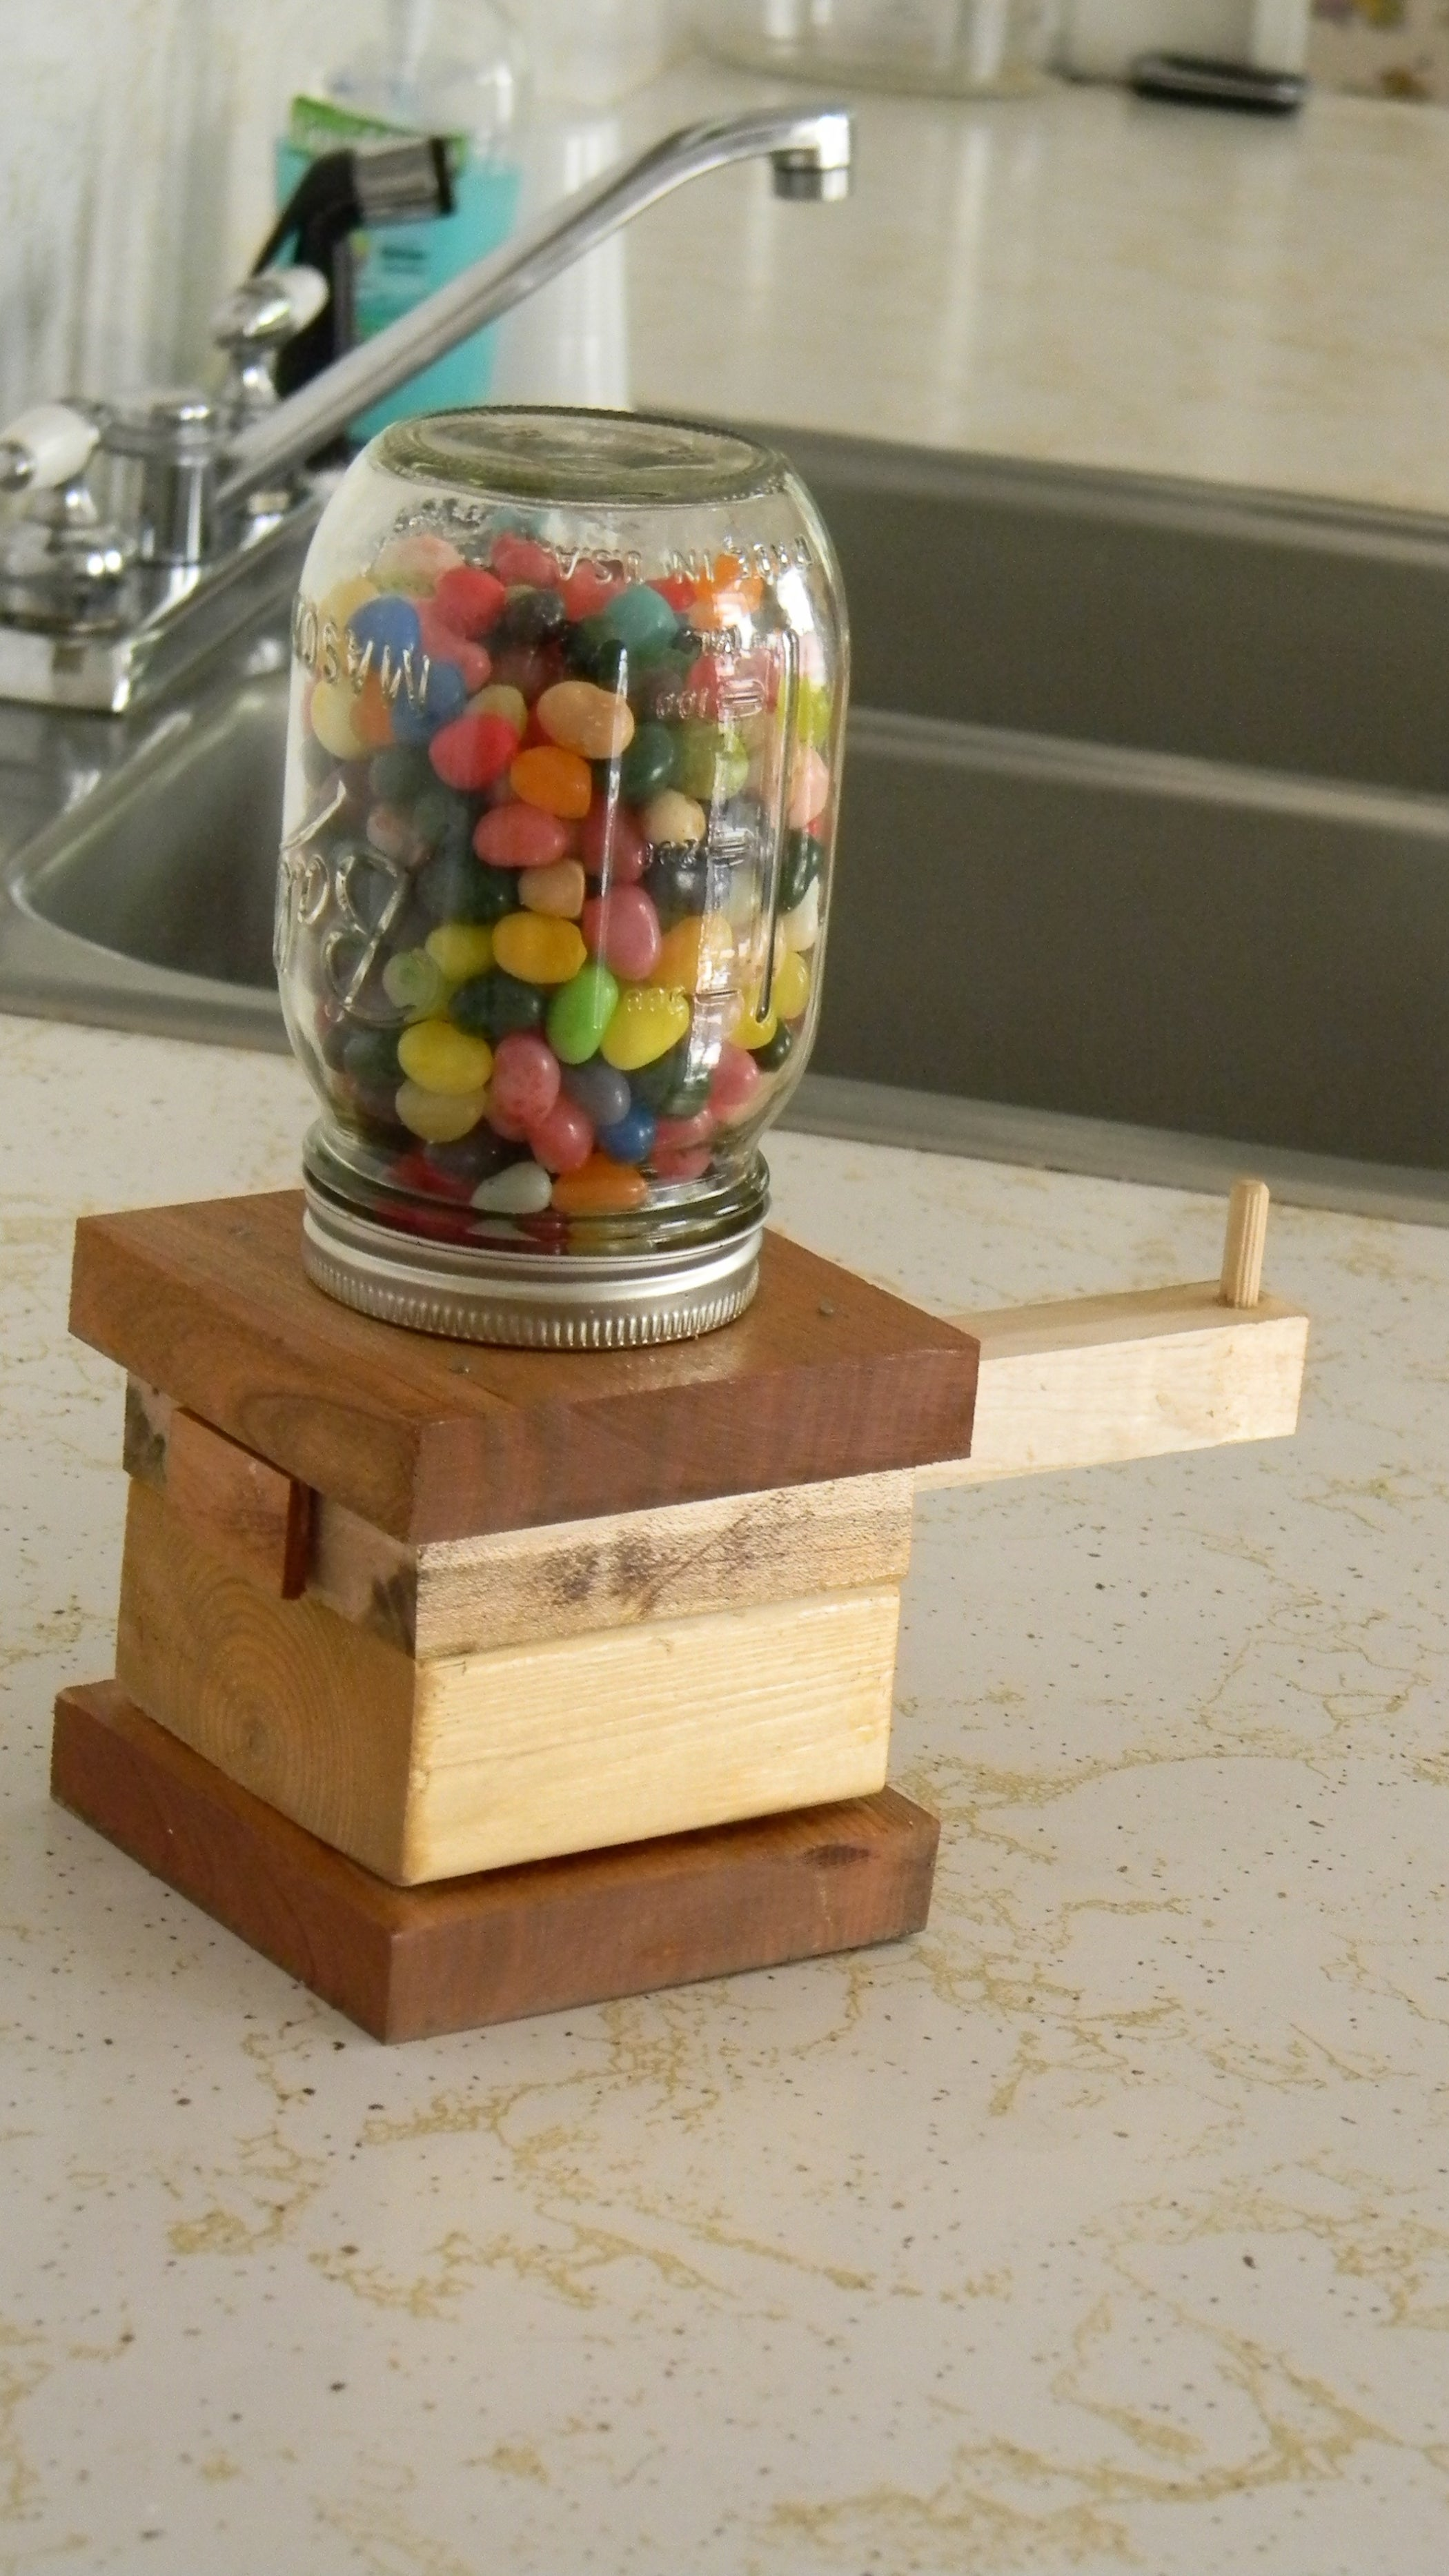 The Awesomest Jelly Bean Dispenser Ever